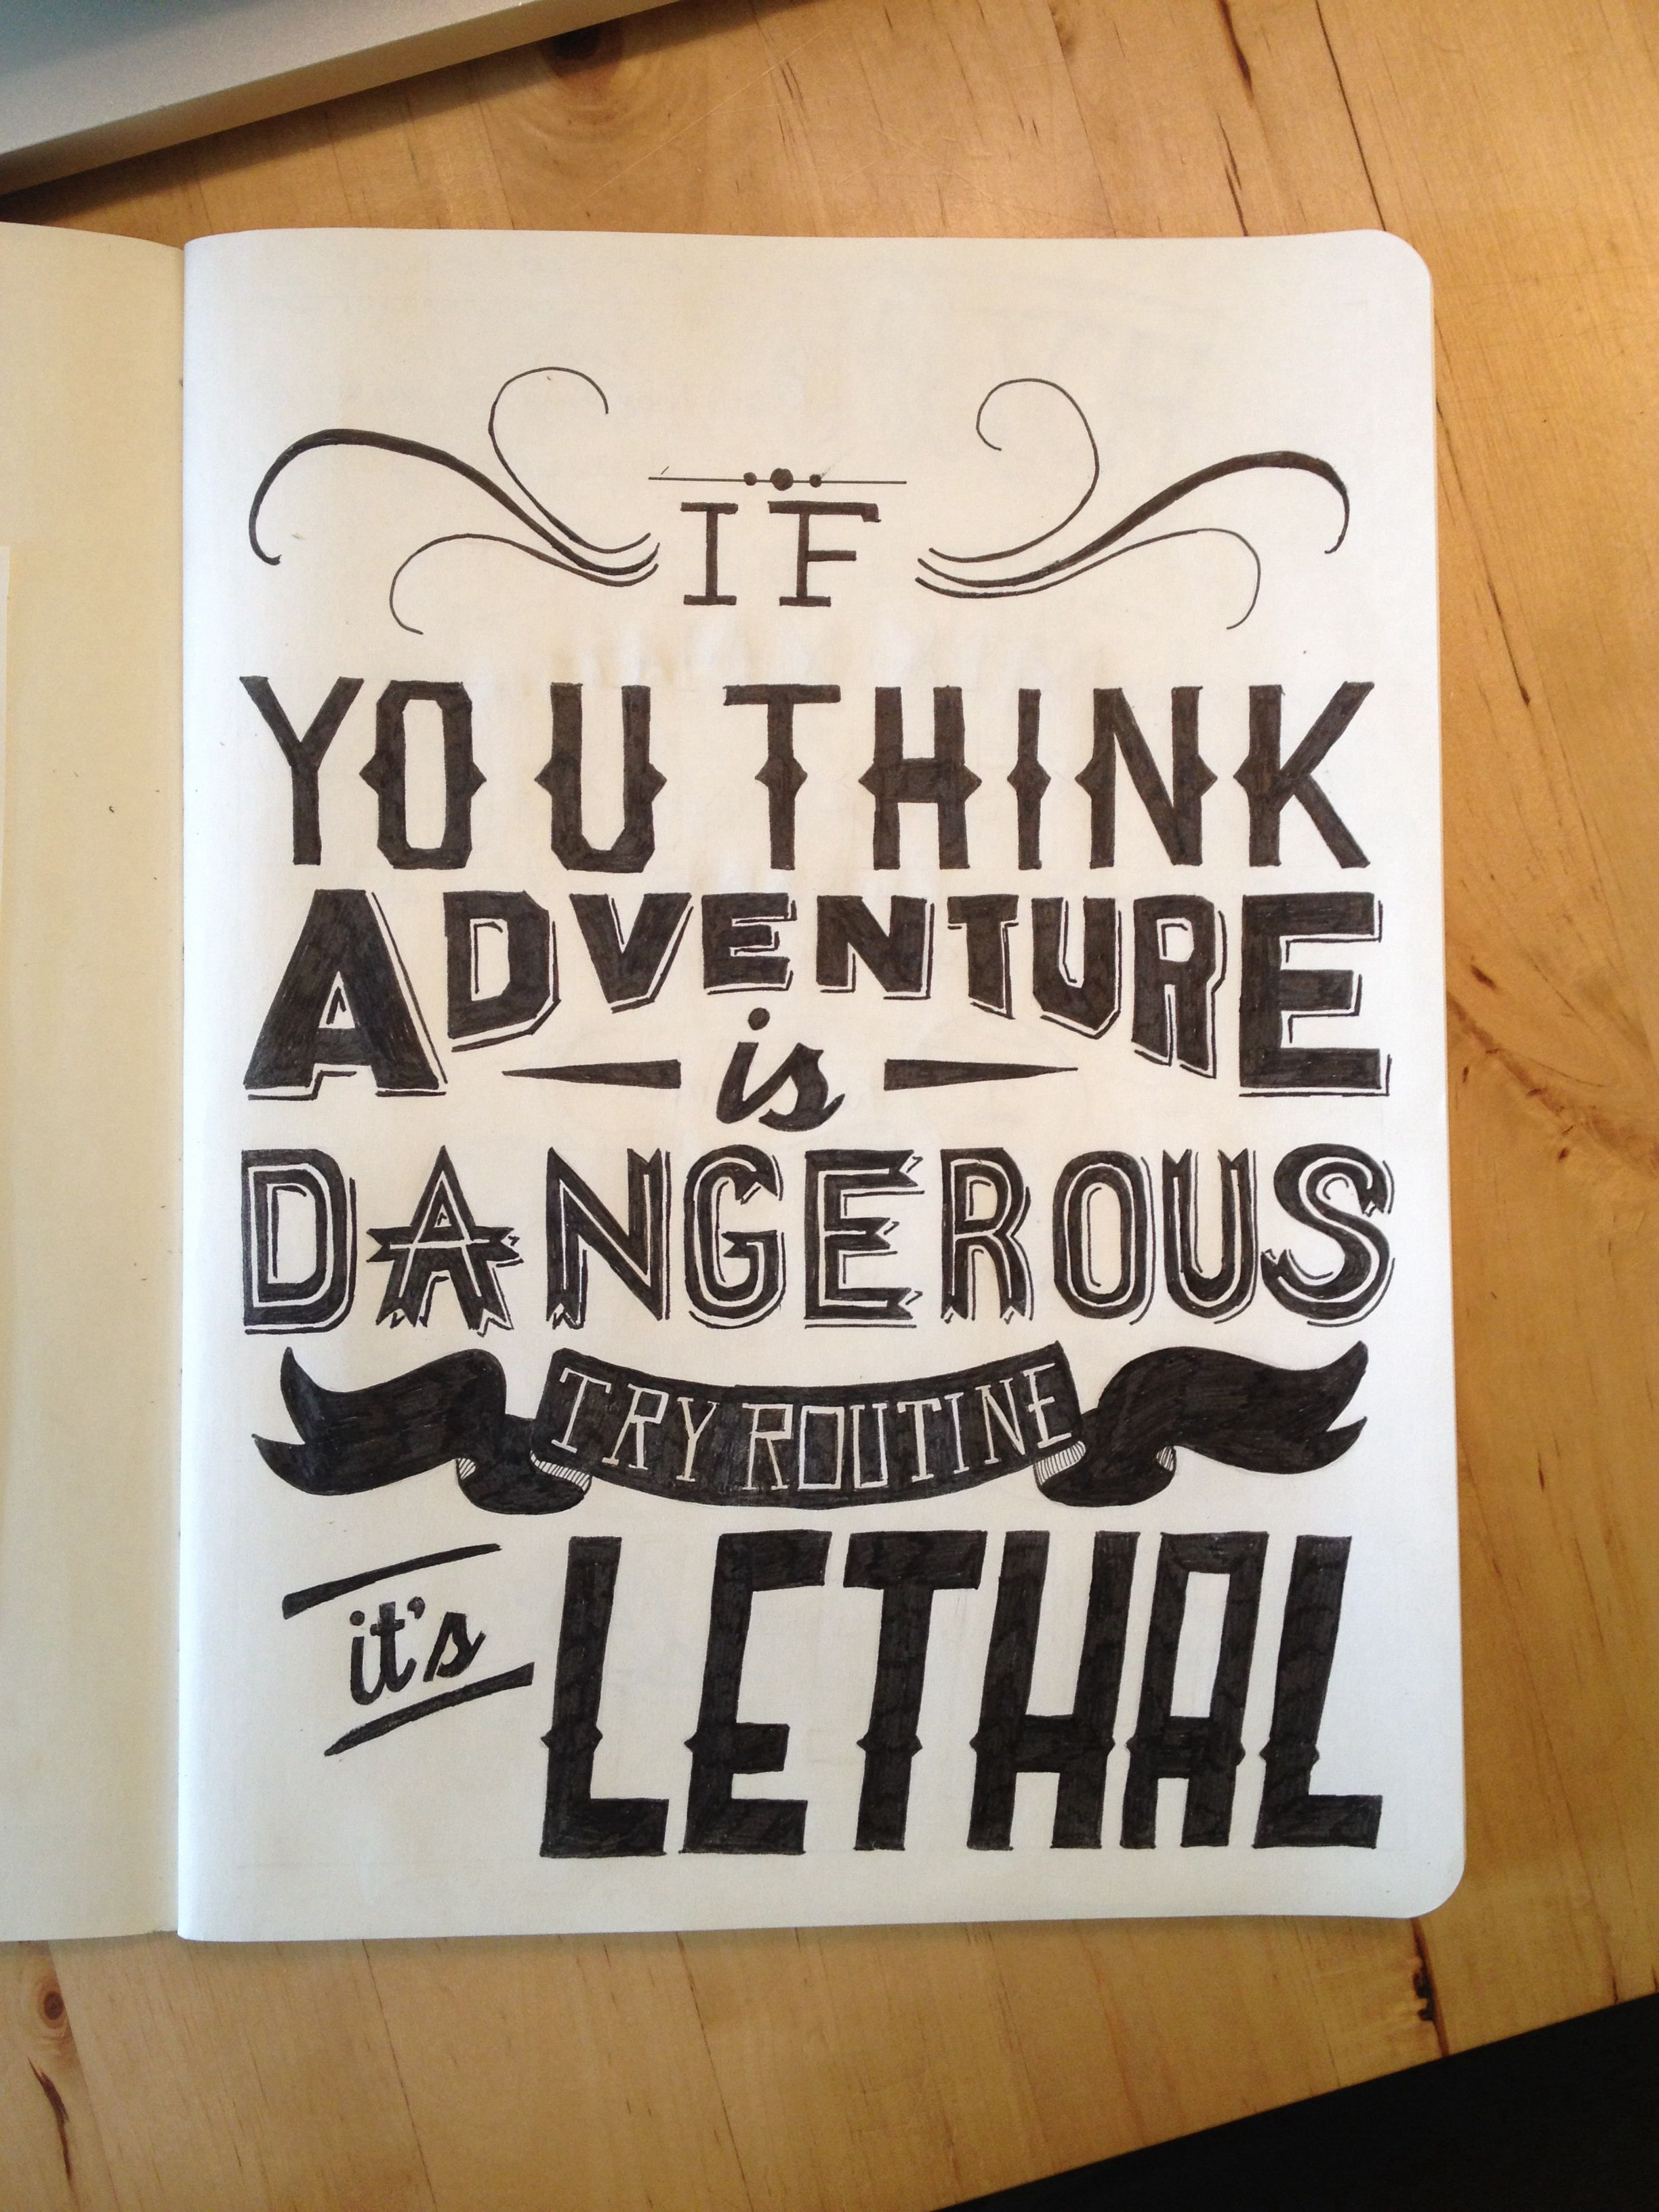 If you think adventure is dangerous, try routine it's lethal